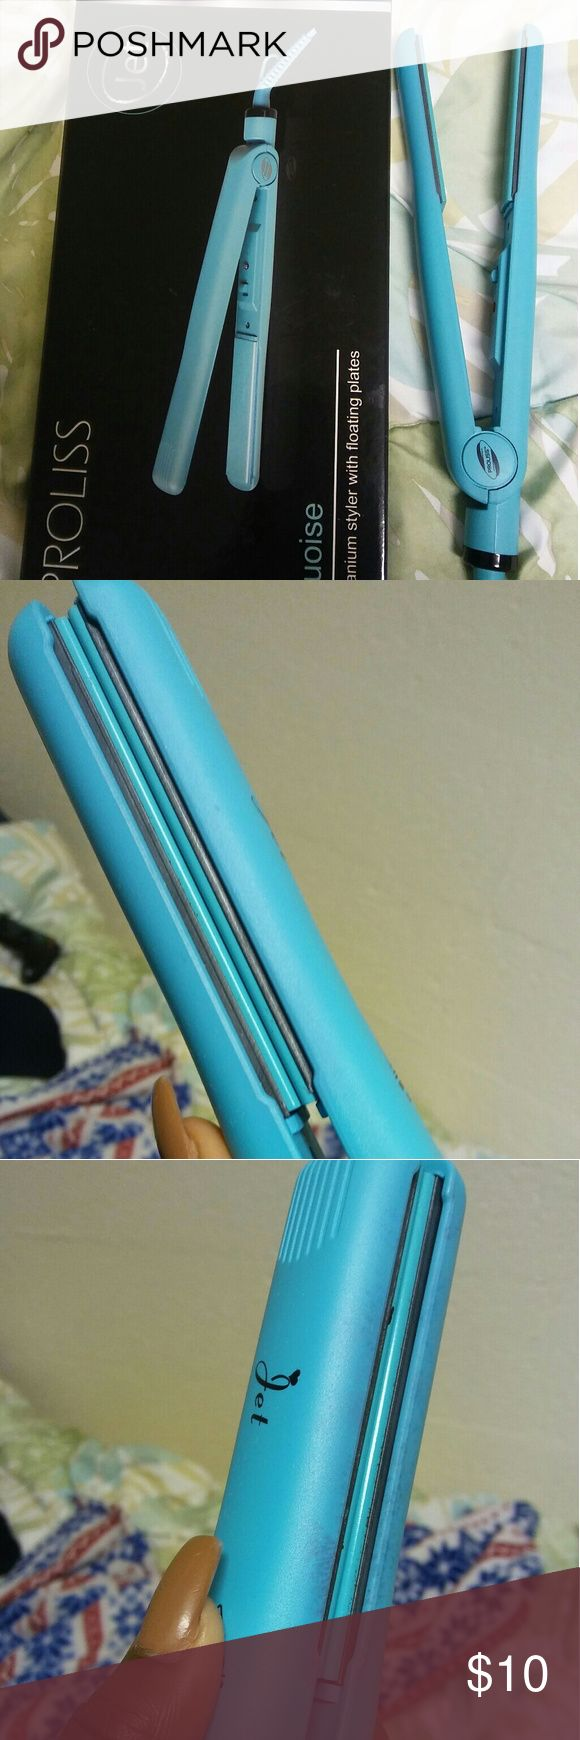 1Inch Turquoise Flat Iron Its a Turquoise color. Its one inch. Only has on and off switch, doesn't have temperature change. It comes in a box, it still has $12.99 price tag on the box Only used it 4 times and had it for 6 months. On one side the color is slowly fading. It has been cleaned. Dual Voltage: 110 - 240V, 50/60hz. Proliss Other